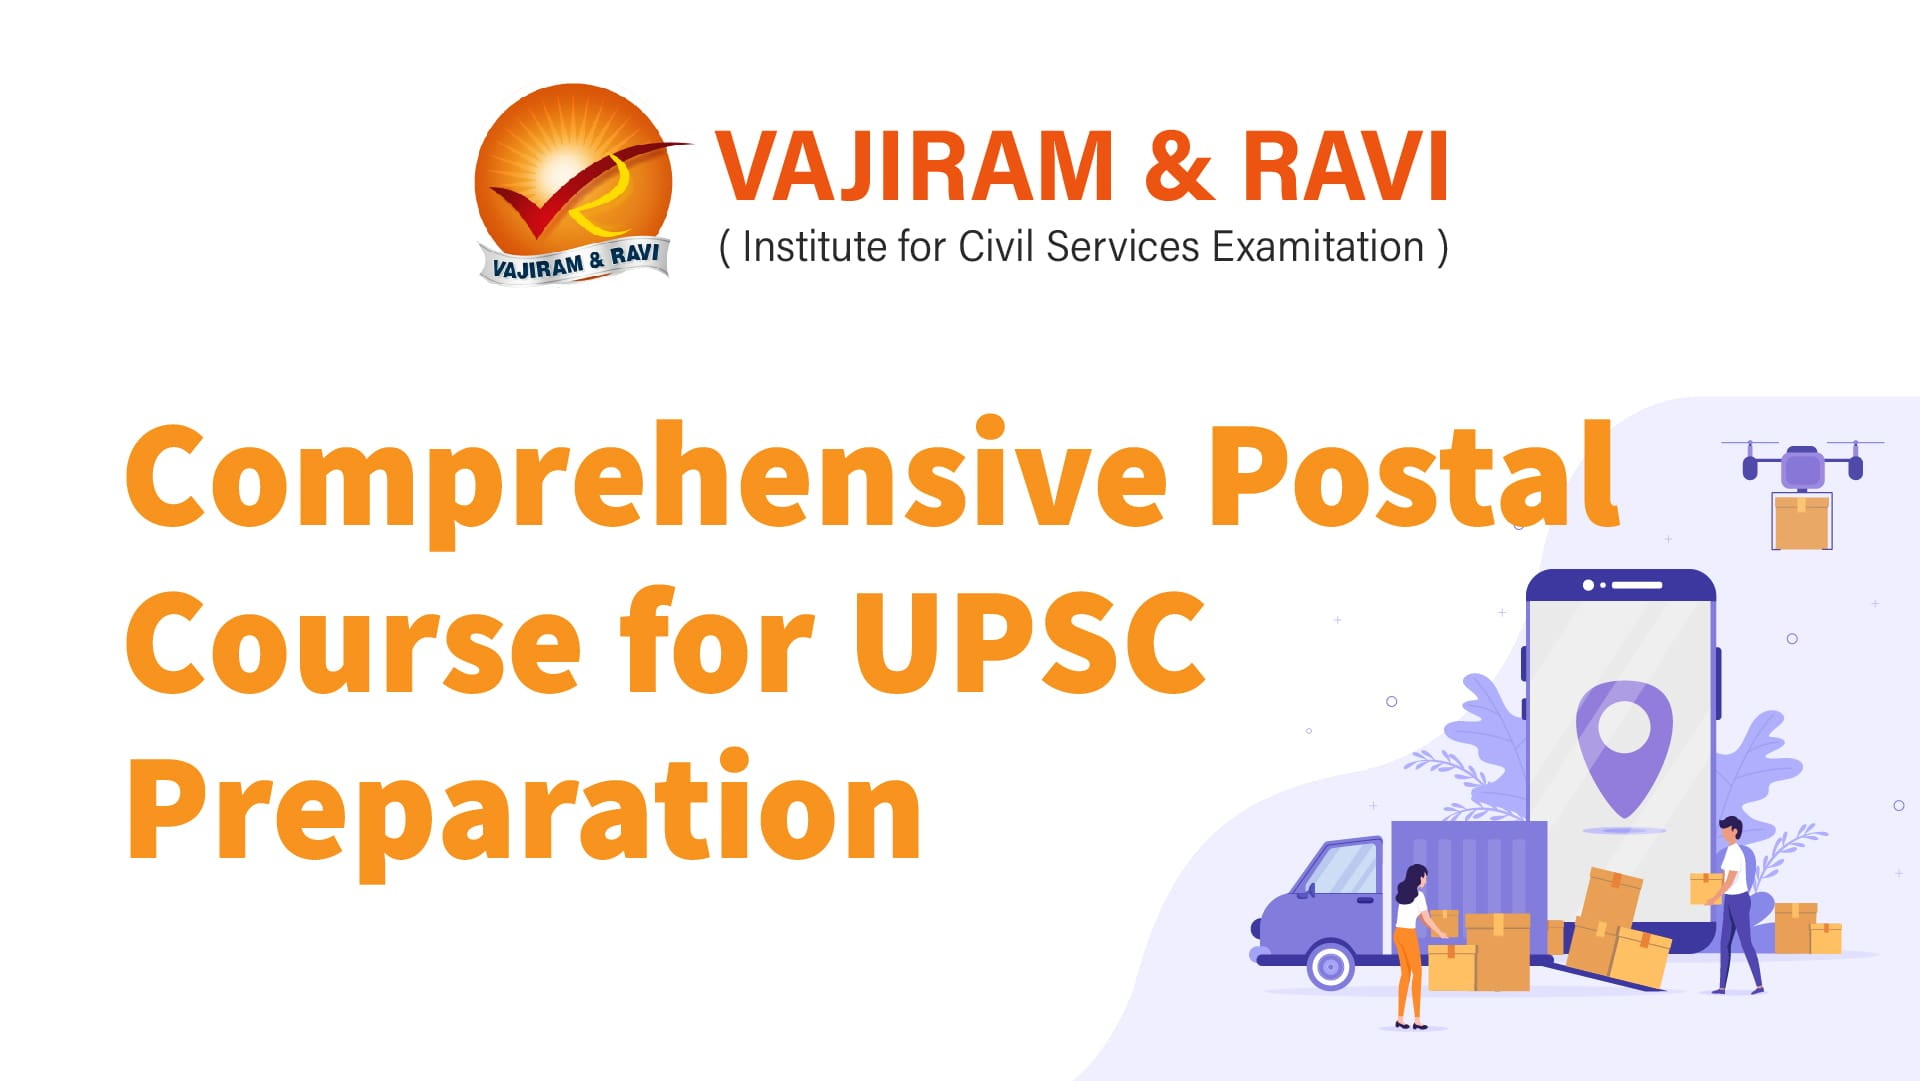 Vajiram & Ravi - Current Affairs for UPSC, IAS Preparation